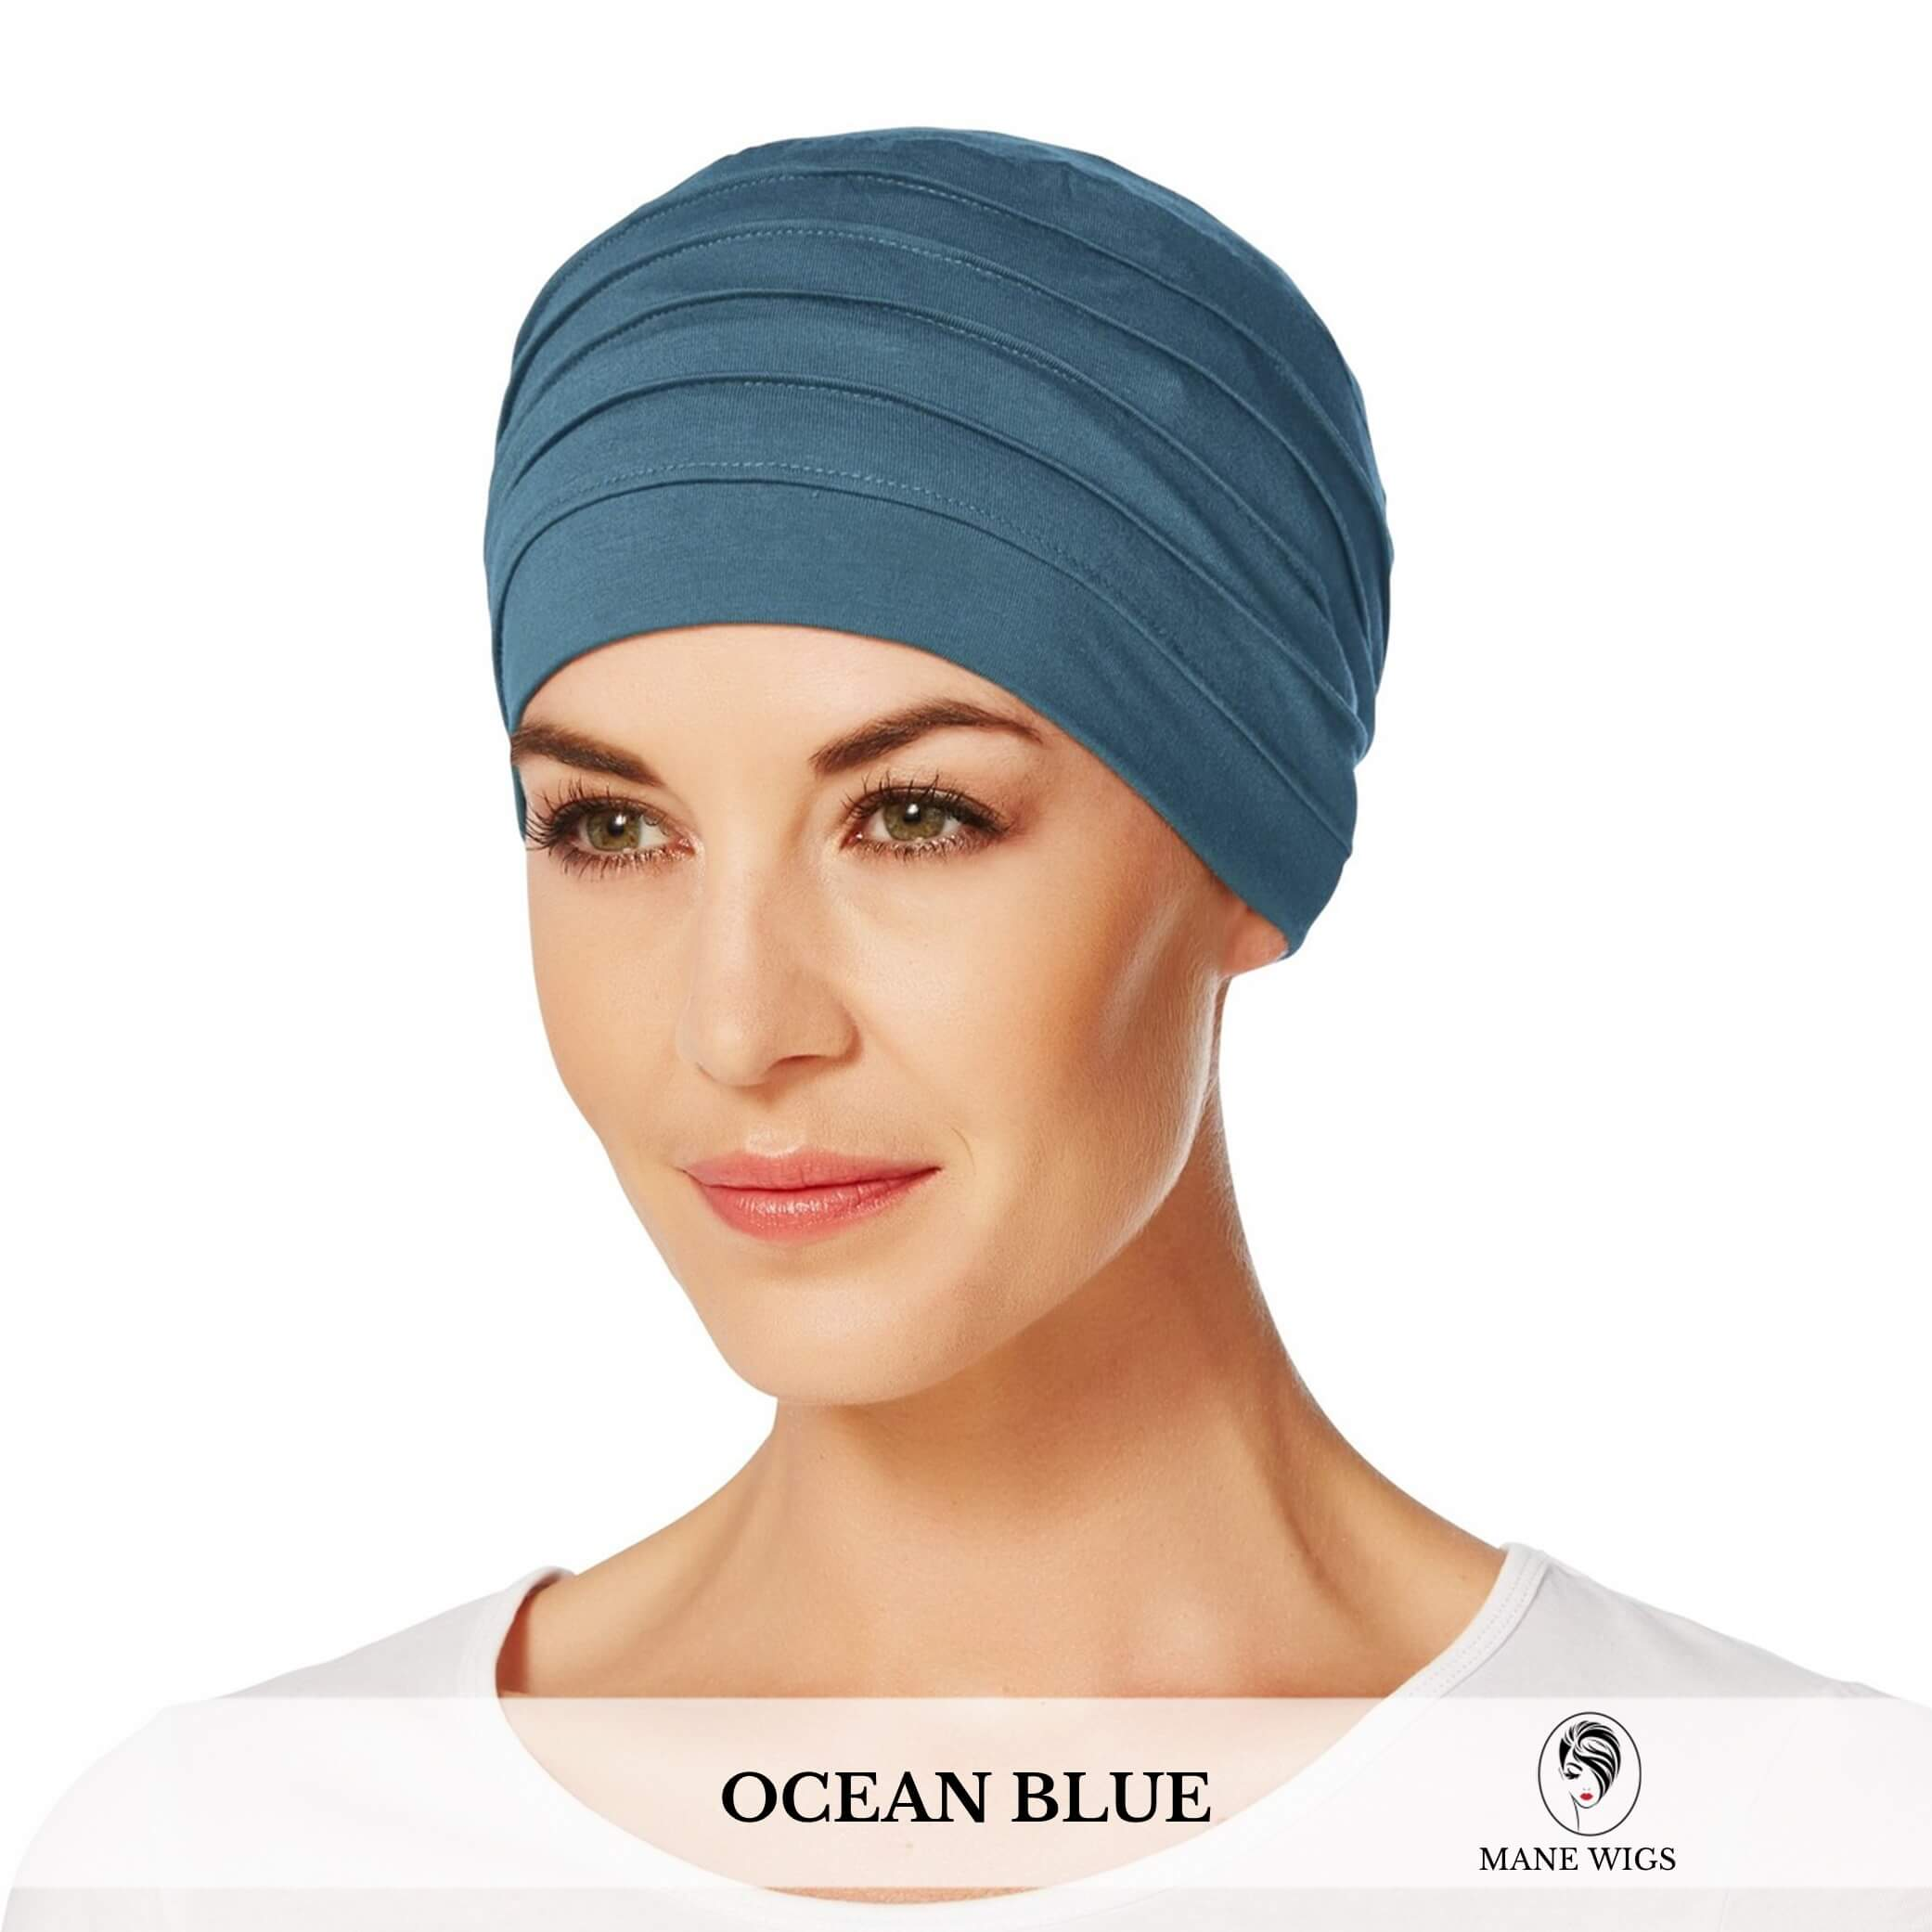 Christine Headwear Yoga Turban 295-Ocean Blue